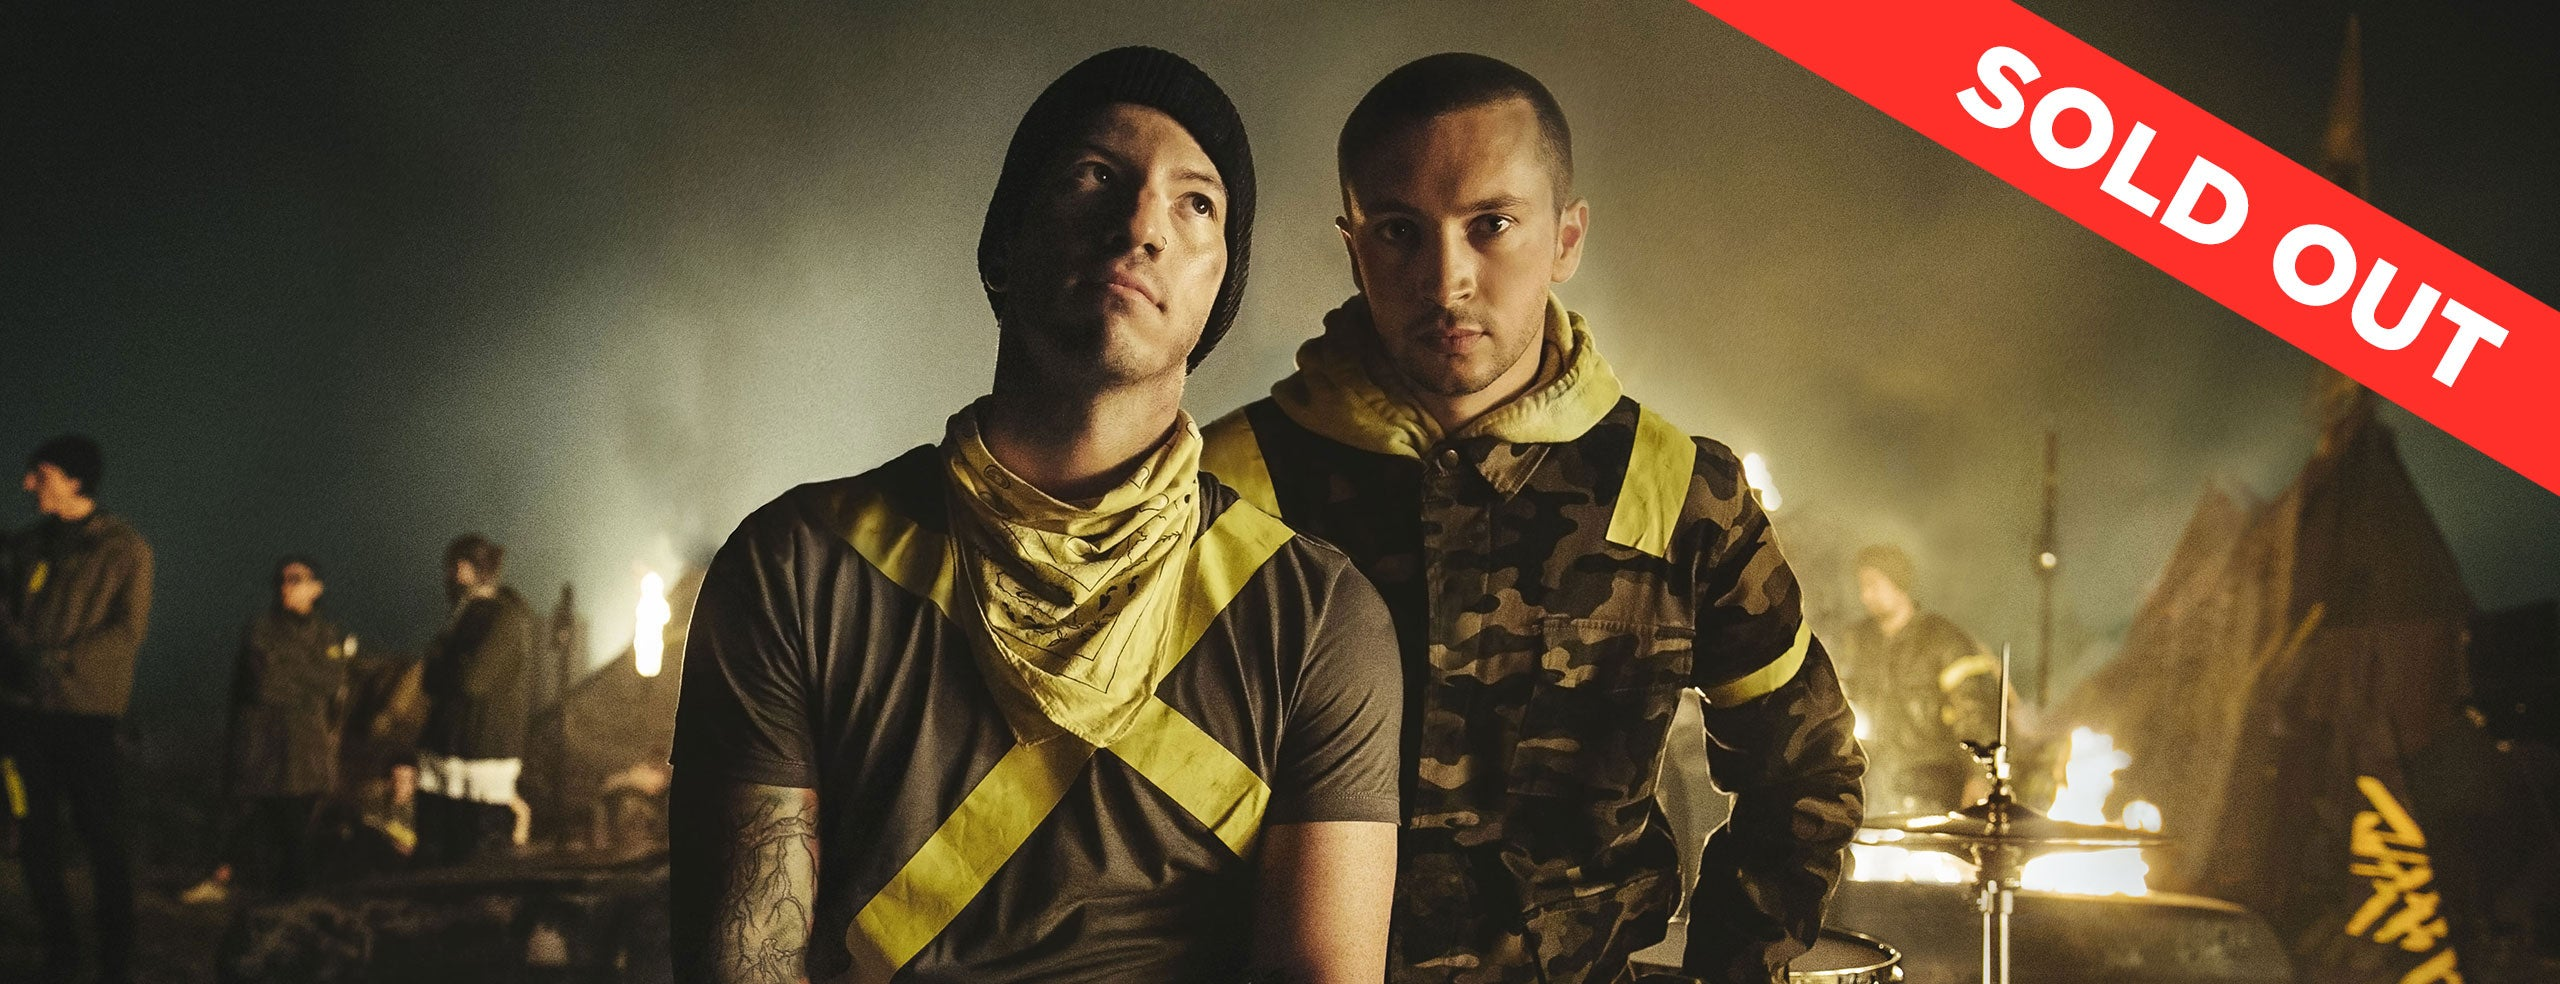 2560x984--21Pilots-SOLD-OUT.jpg